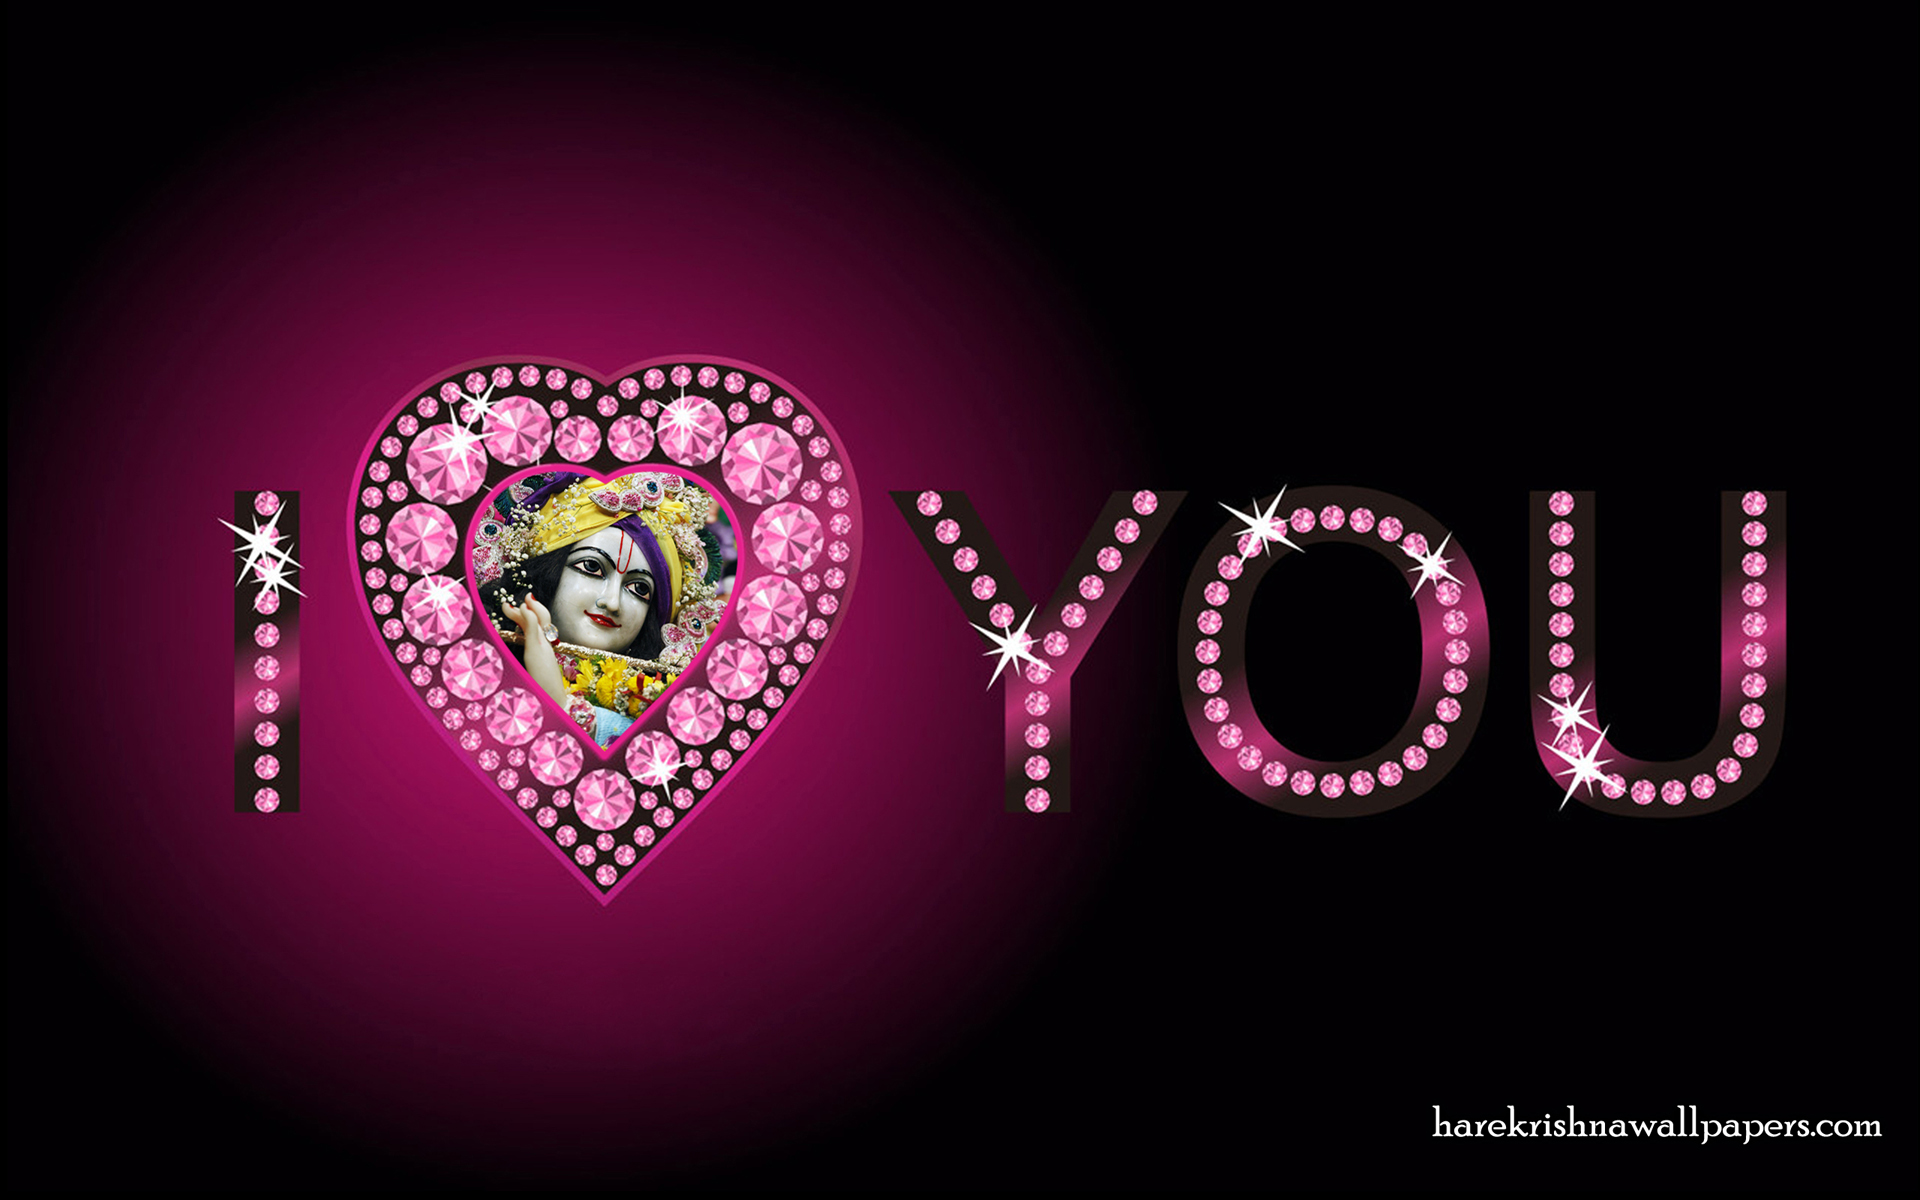 I Love You Gopinath Wallpaper (002) Size 1920x1200 Download